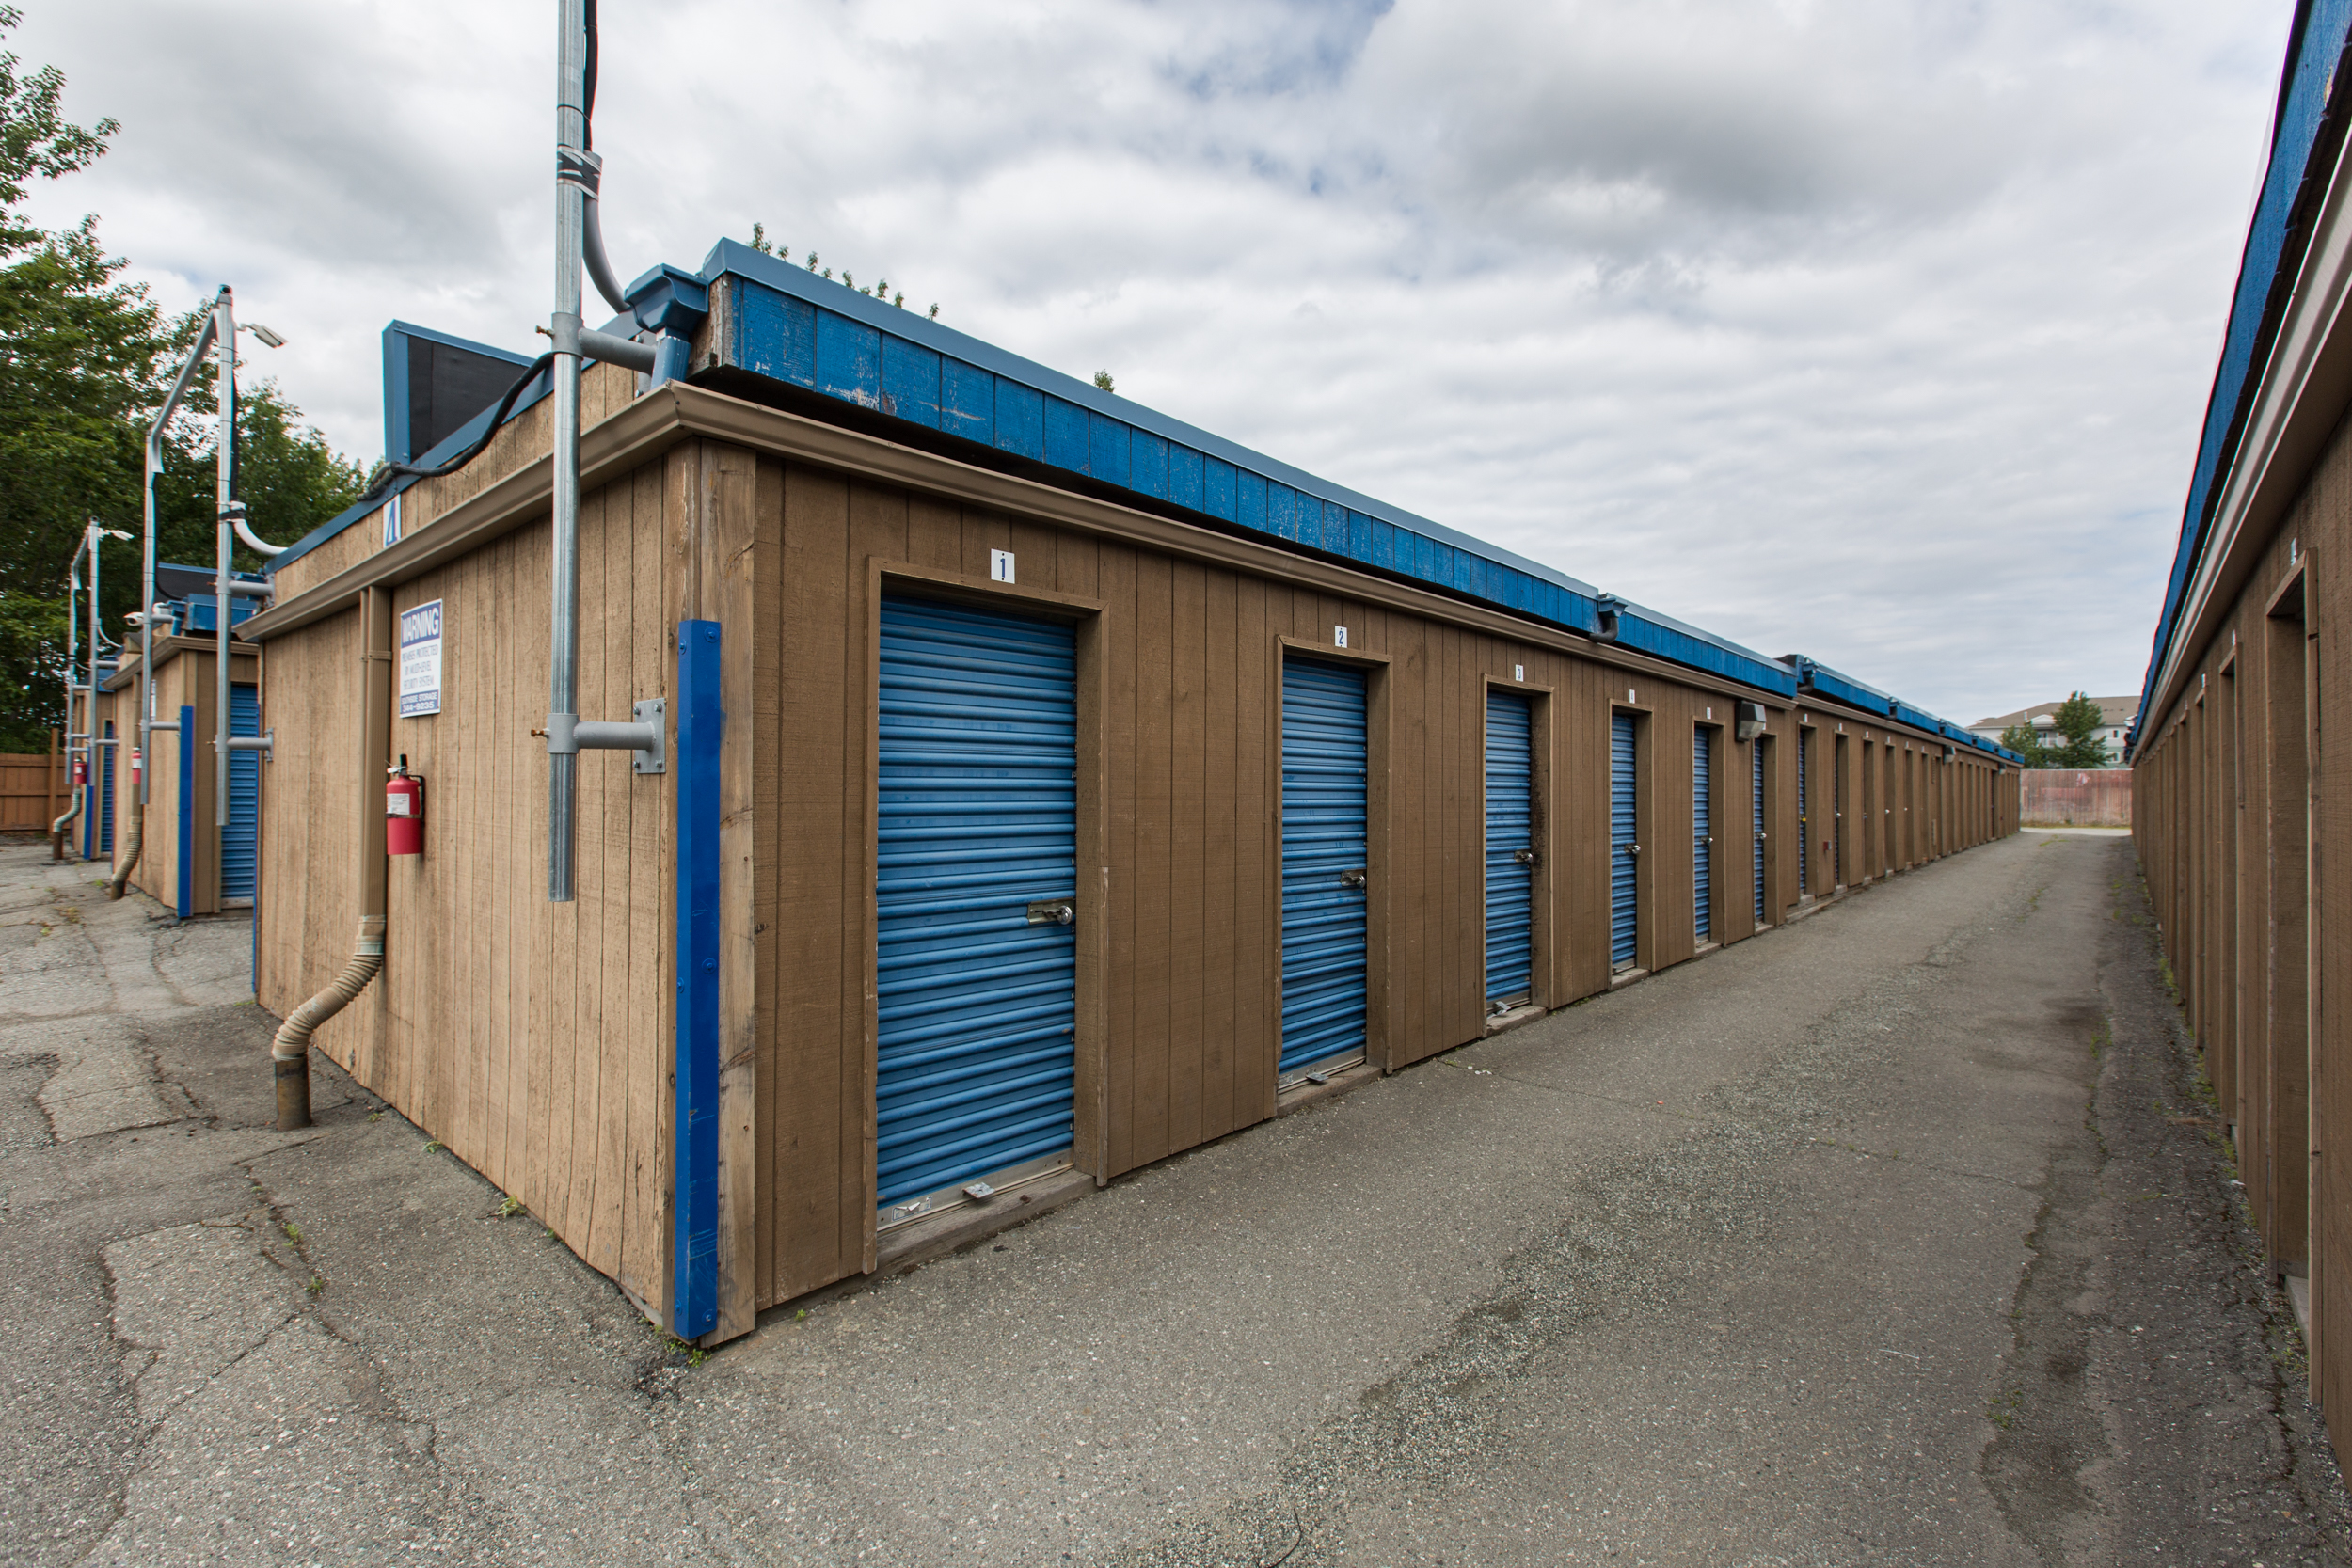 Best self storage in Alaska